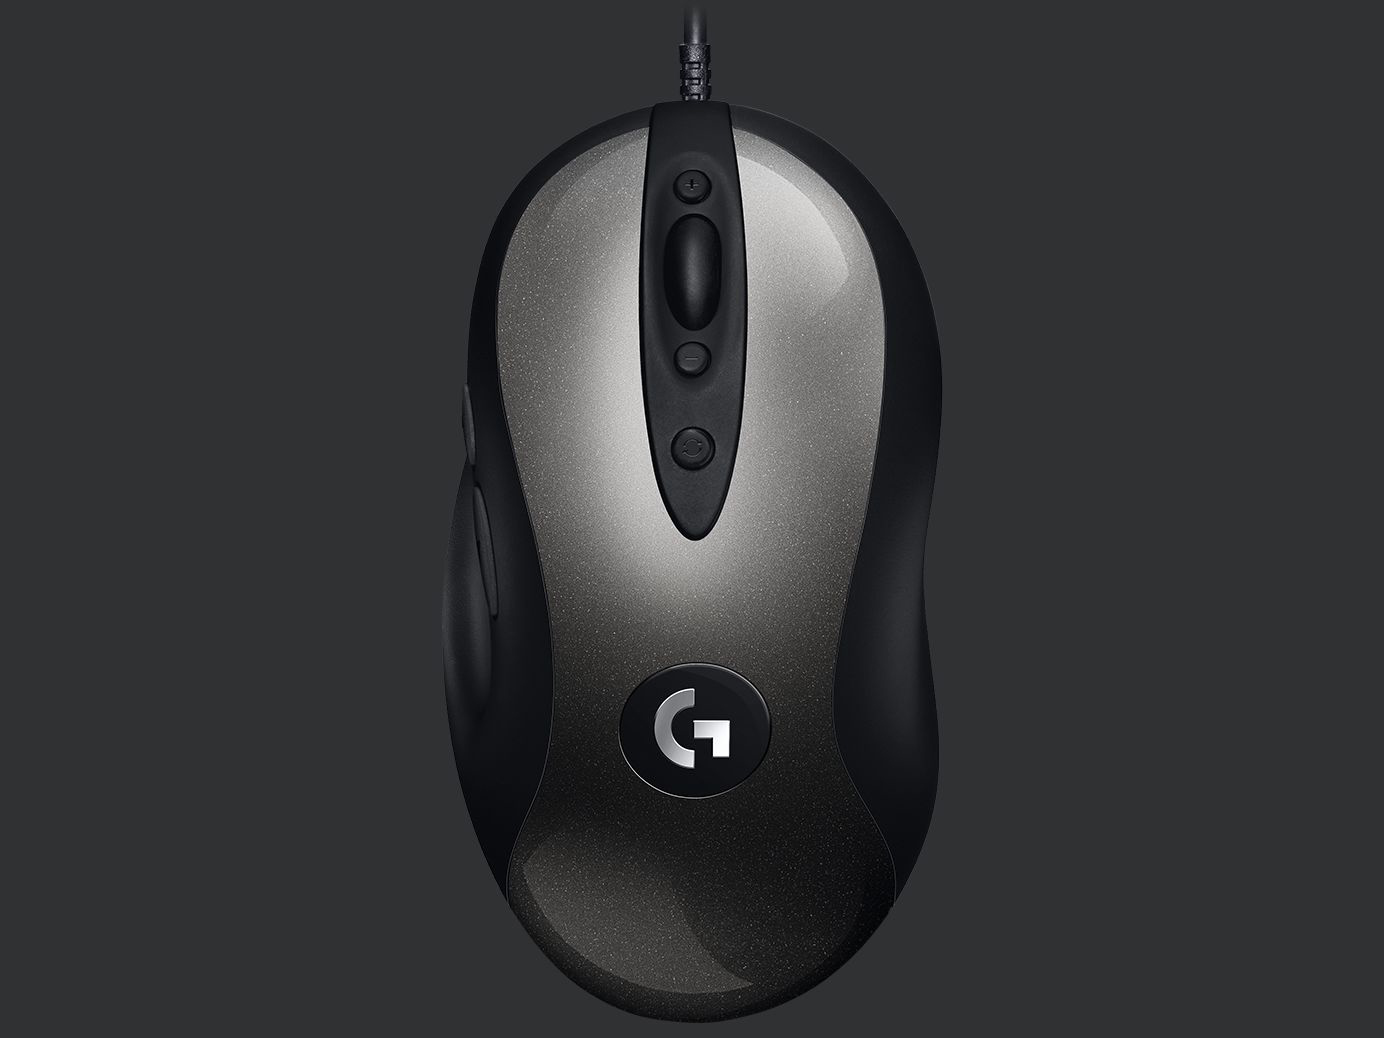 LOGITECH MOUSE MX518 DRIVERS FOR MAC